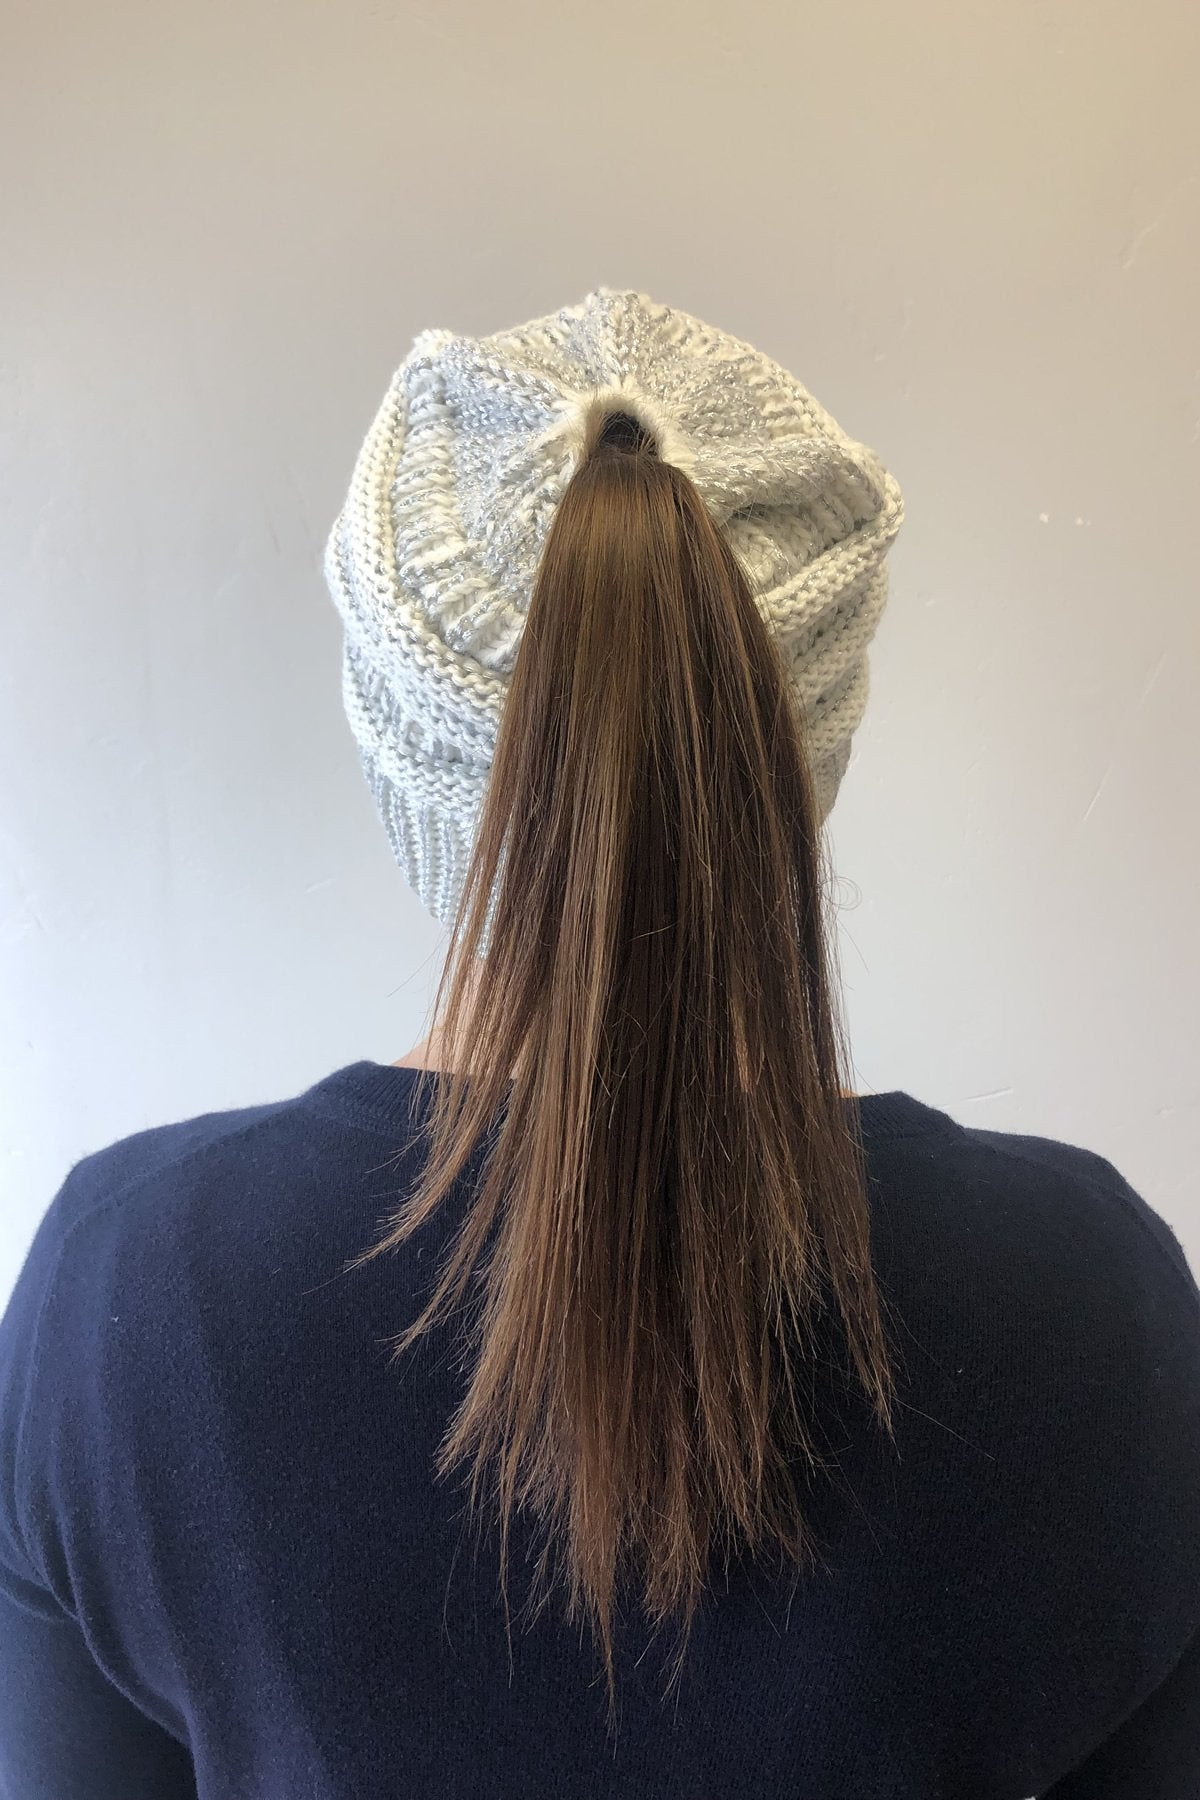 Messy Bun Metallic Beanie In Ivory Metallic Silver - ALL SALES FINAL